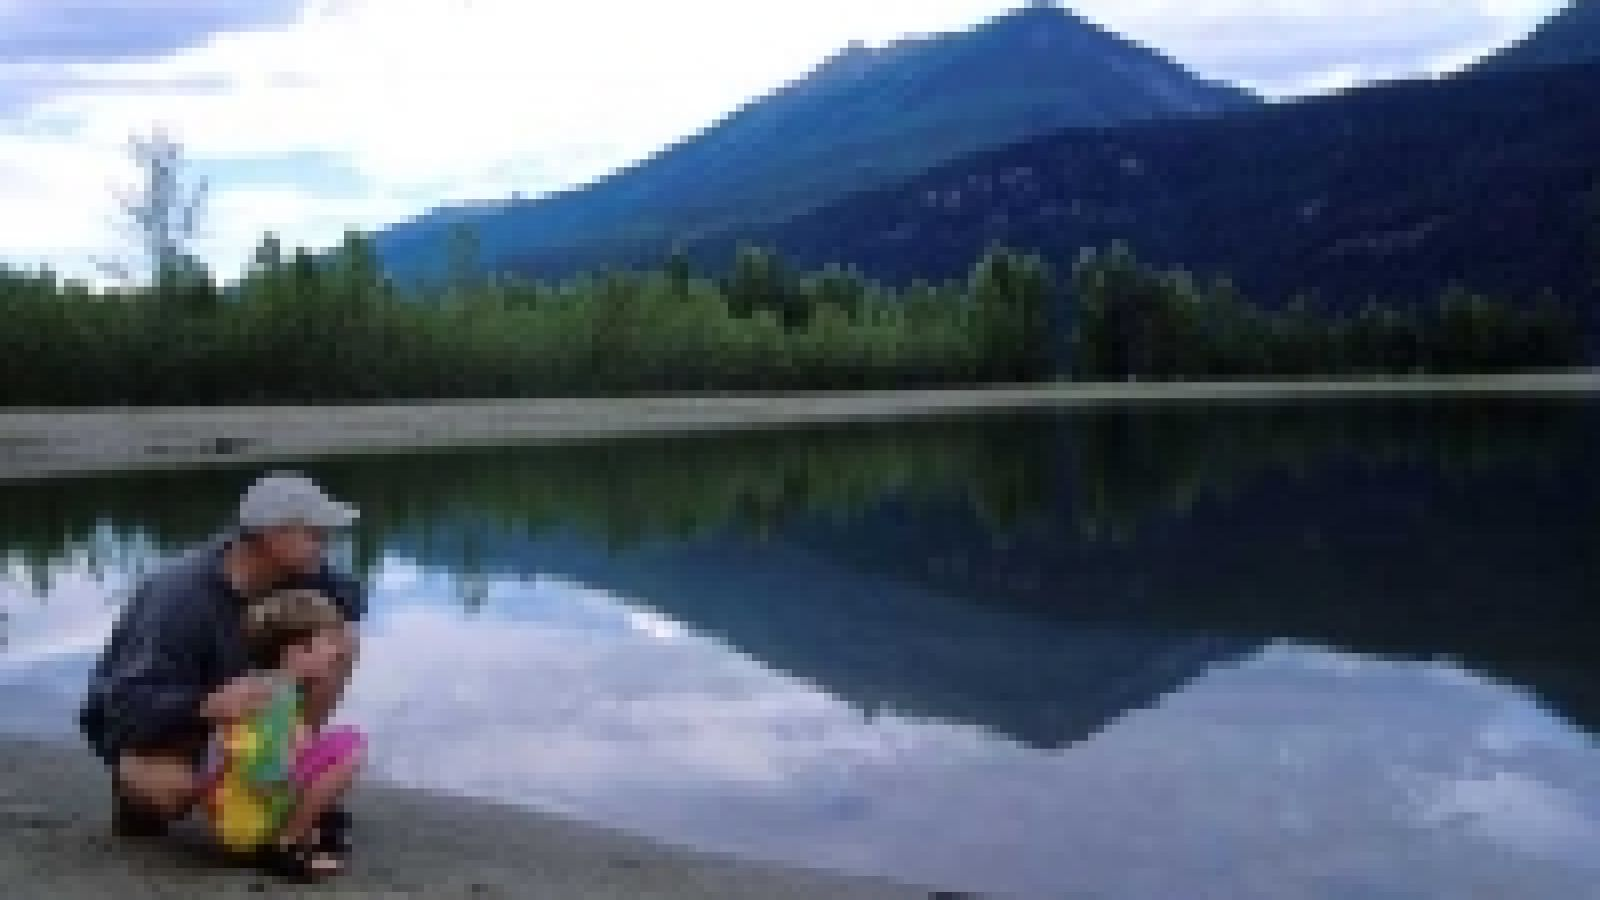 Blanket Creek Park is one of a system of four provincial parks on the Arrow Lake Reservoir - the warm man-made swimming lagoon is perfect for the whole family.